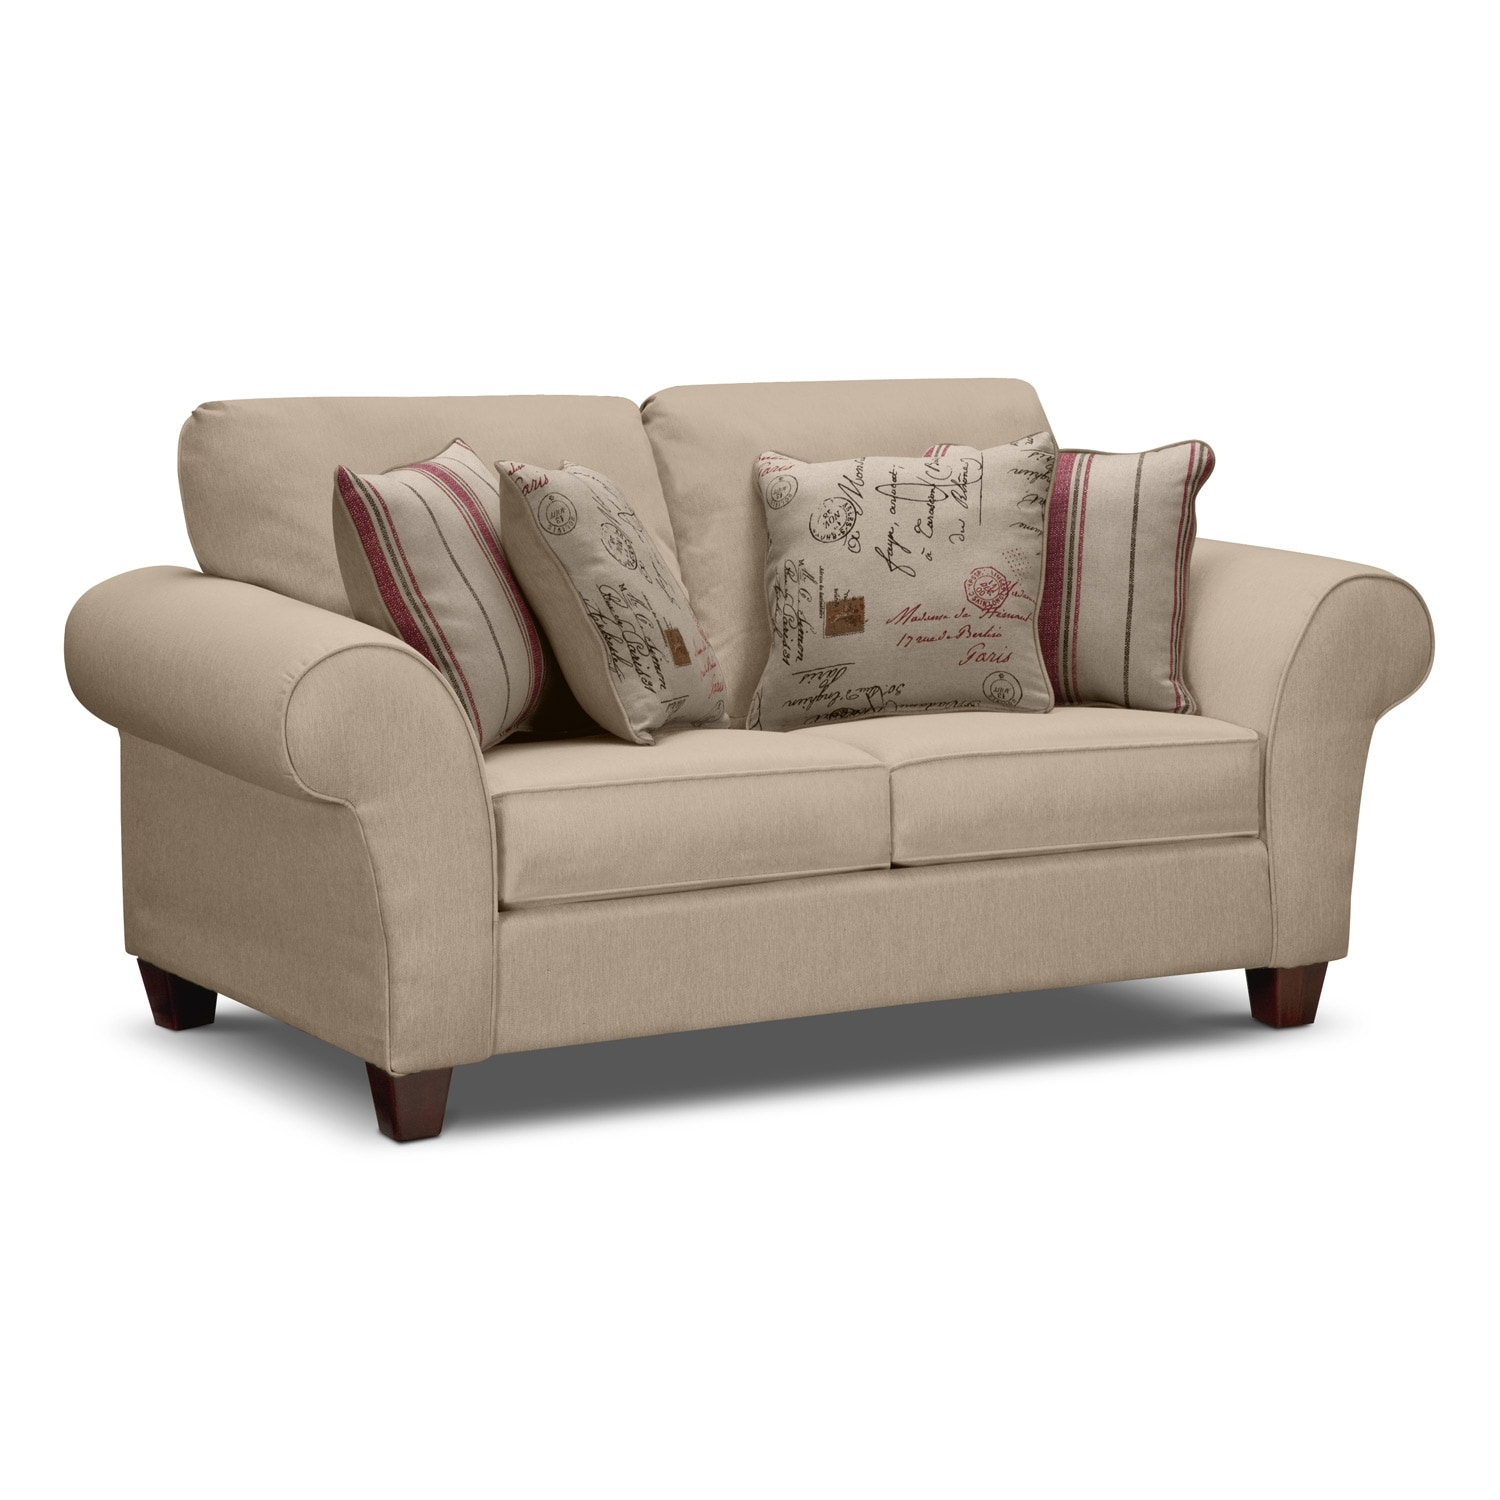 Coming soon Sofa sleeper loveseat